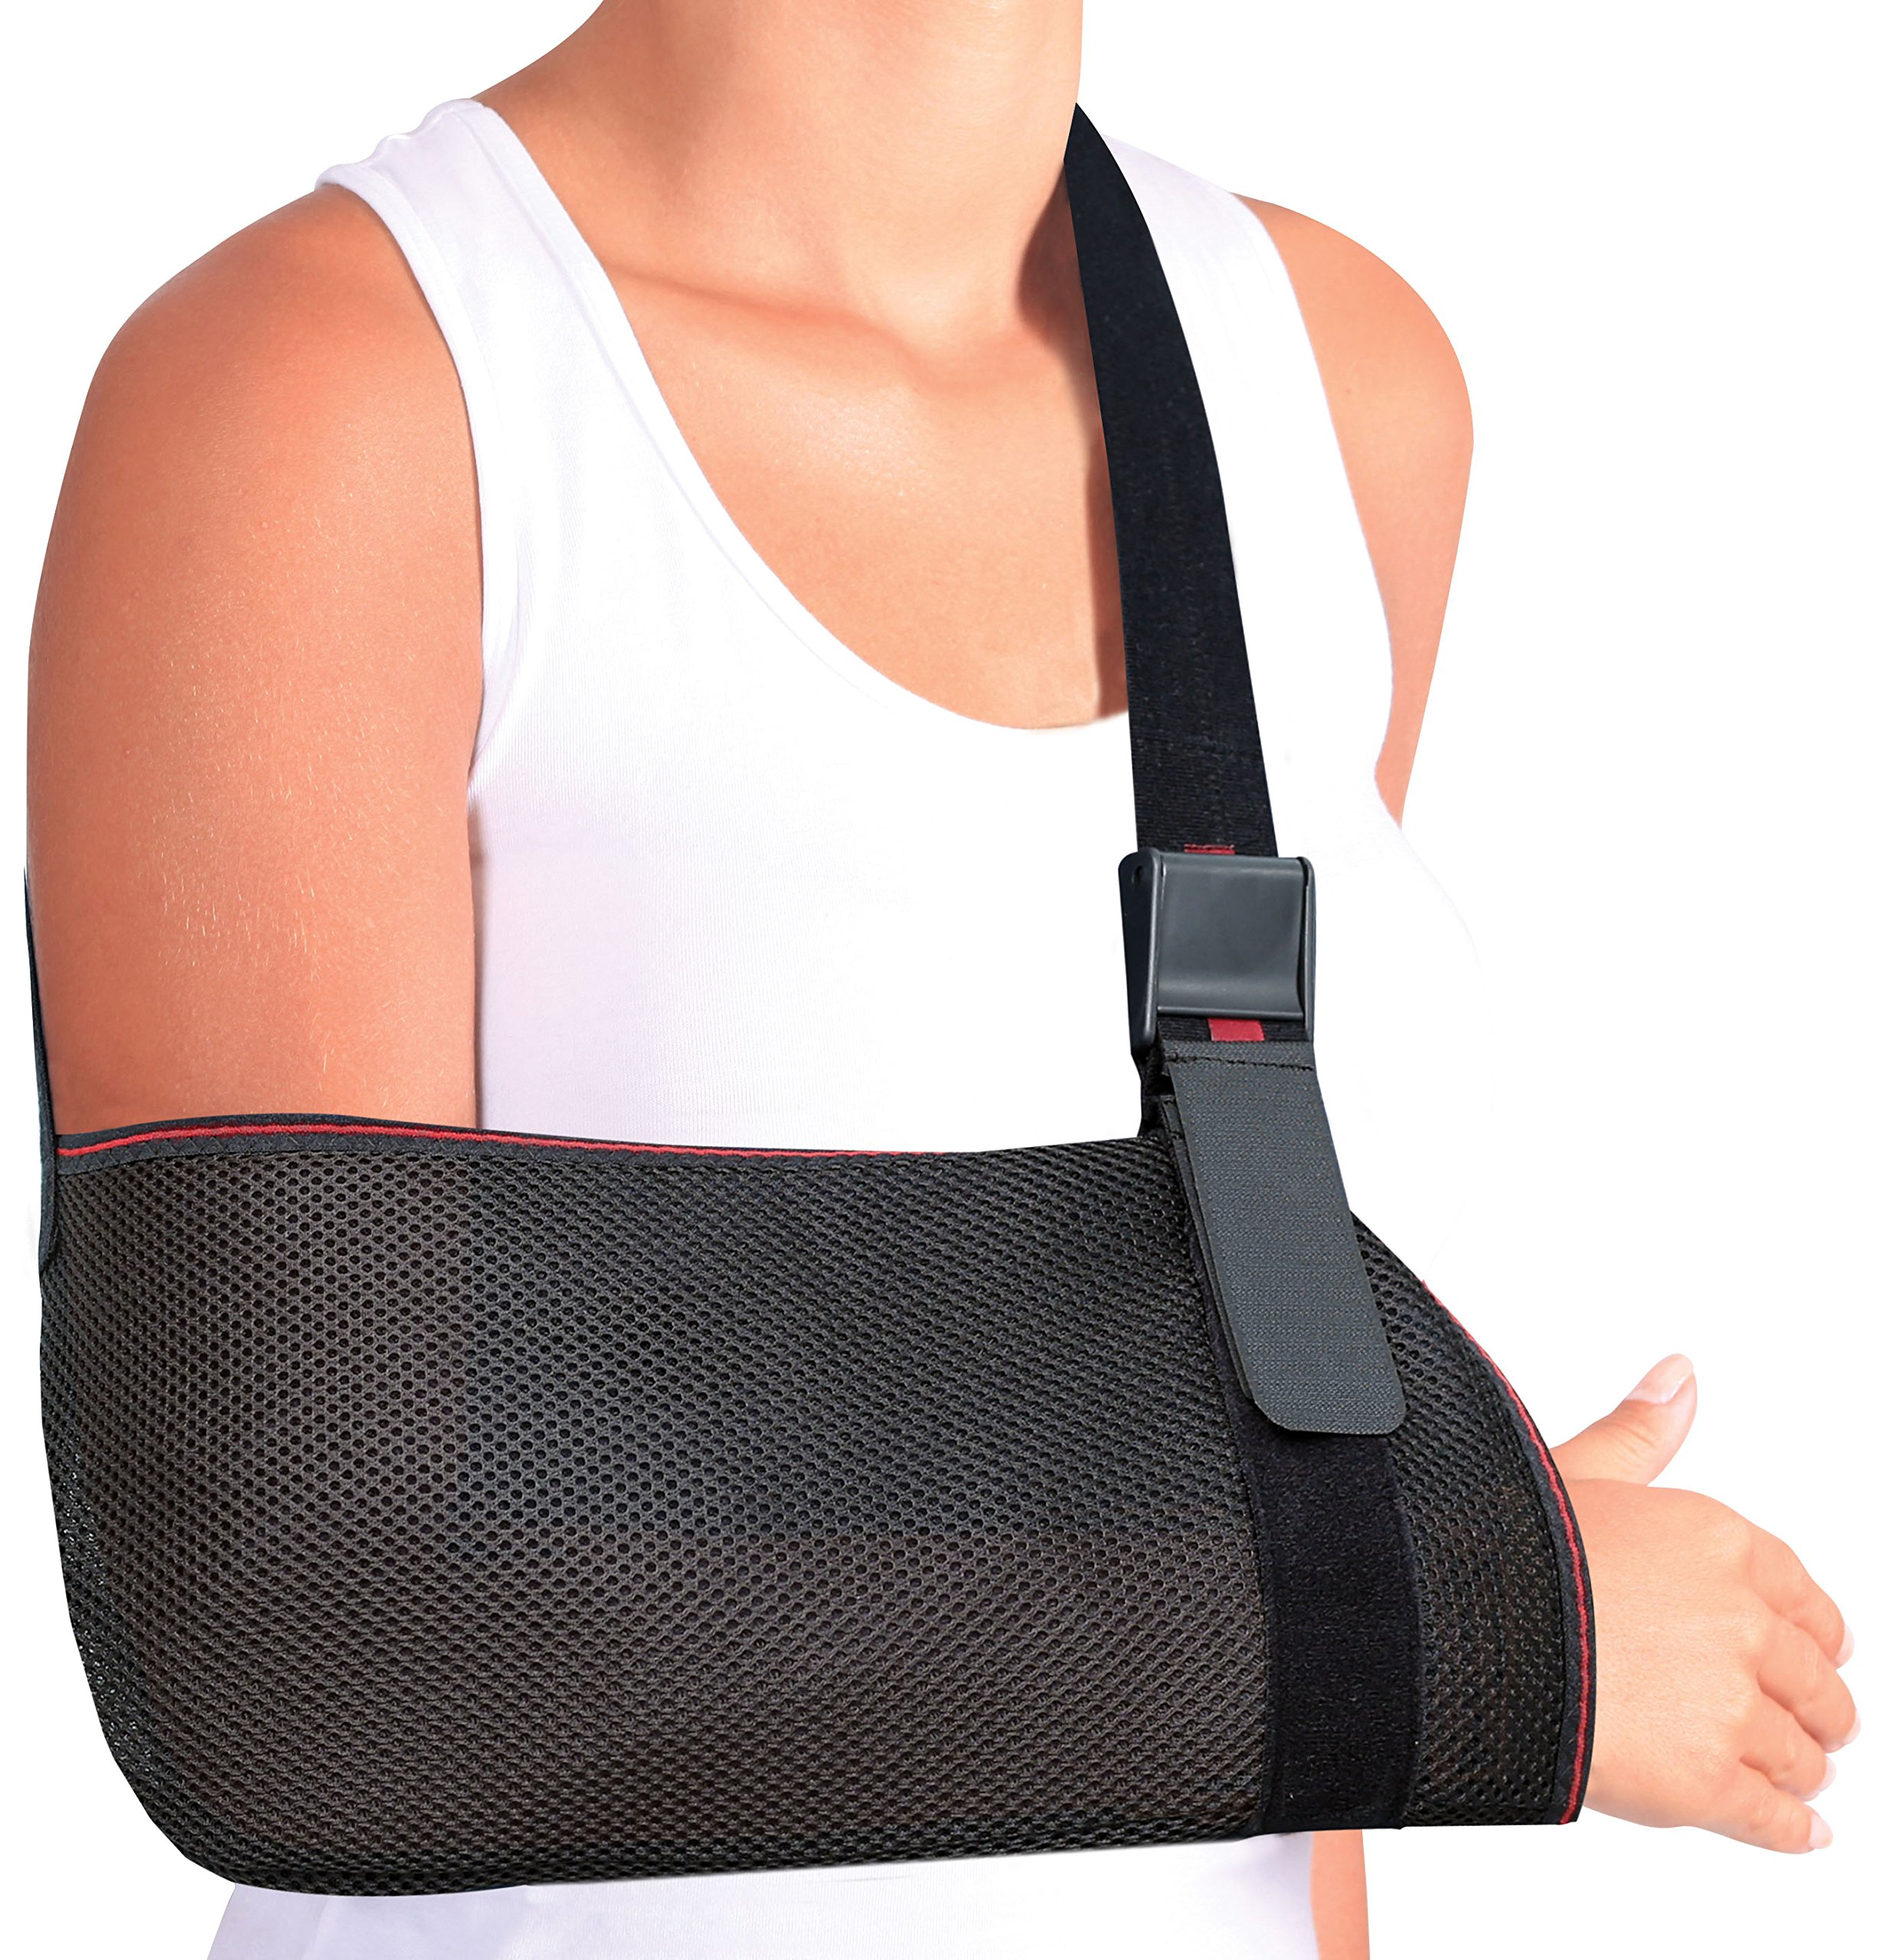 ORTONYX Mesh Arm Support Sling Shoulder Immobilizer Brace – Breathable and Lightweight – Fully Adjustable - L-XXL Black